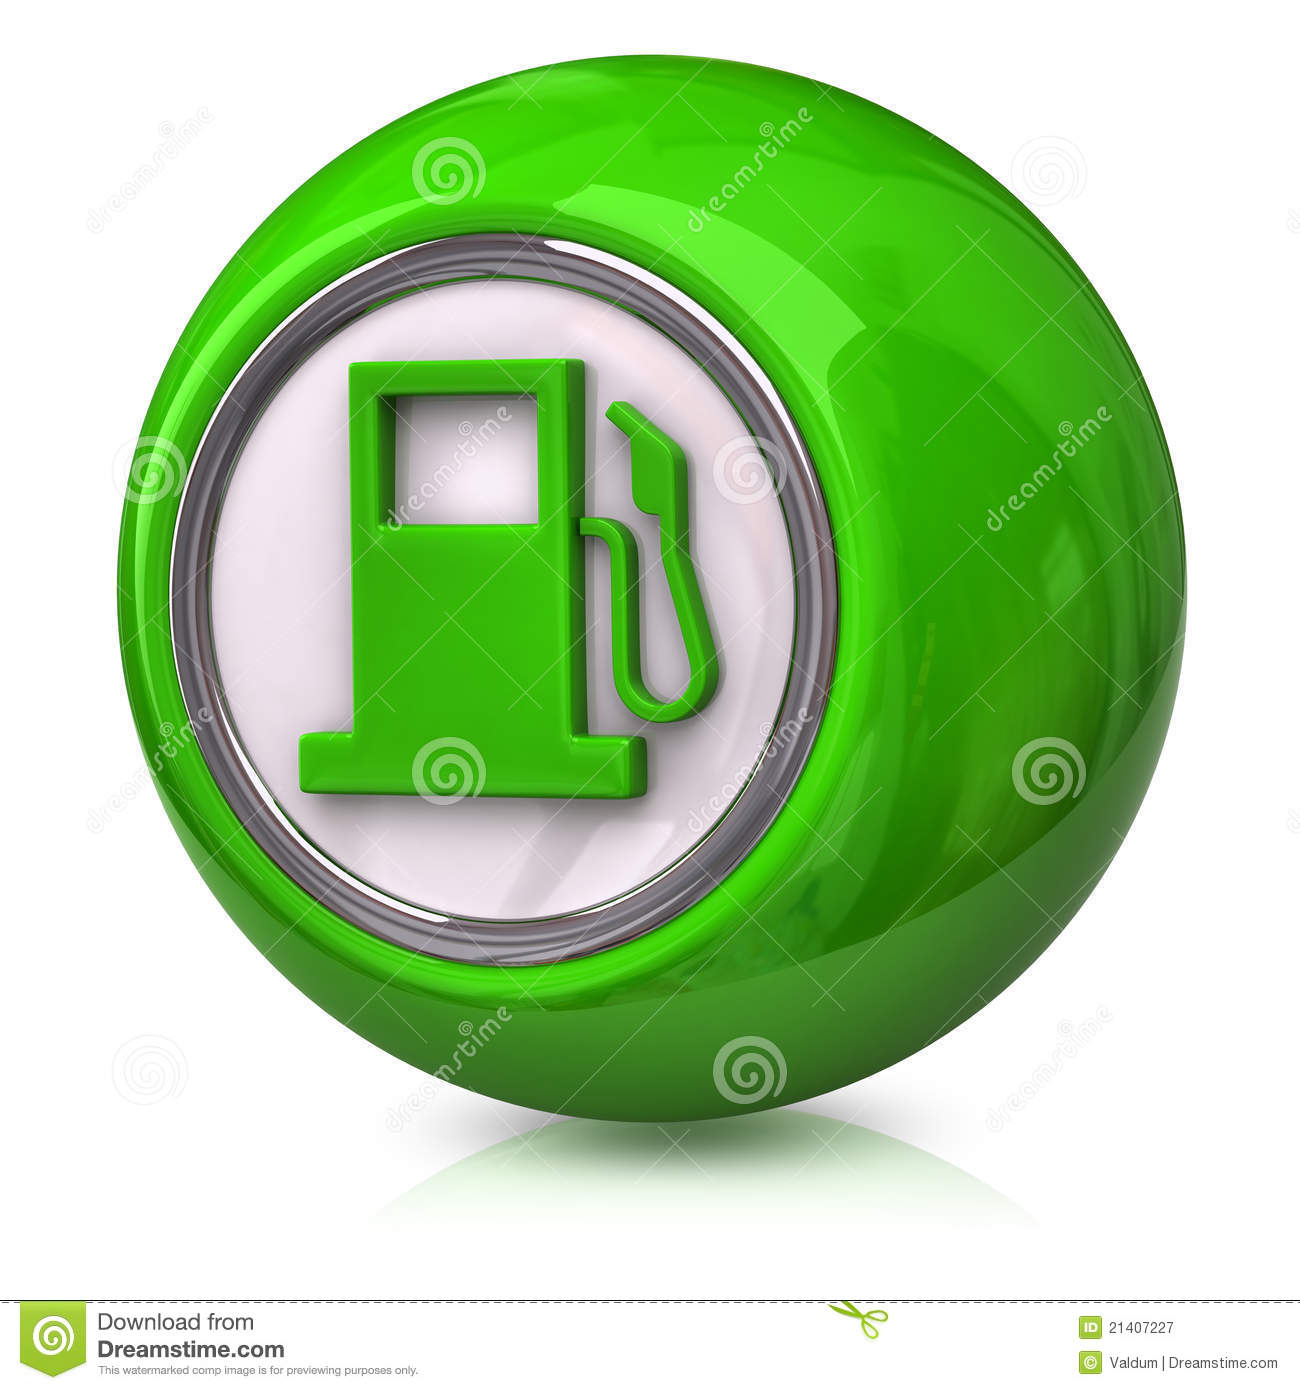 green fuel Biodiesel is a renewable, environmentally-friendly fuel that can directly replace conventional petroleum diesel easy to switch in most cases, biodiesel is a direct replacement for diesel fuel, with no modifications to engines or parts necessary.